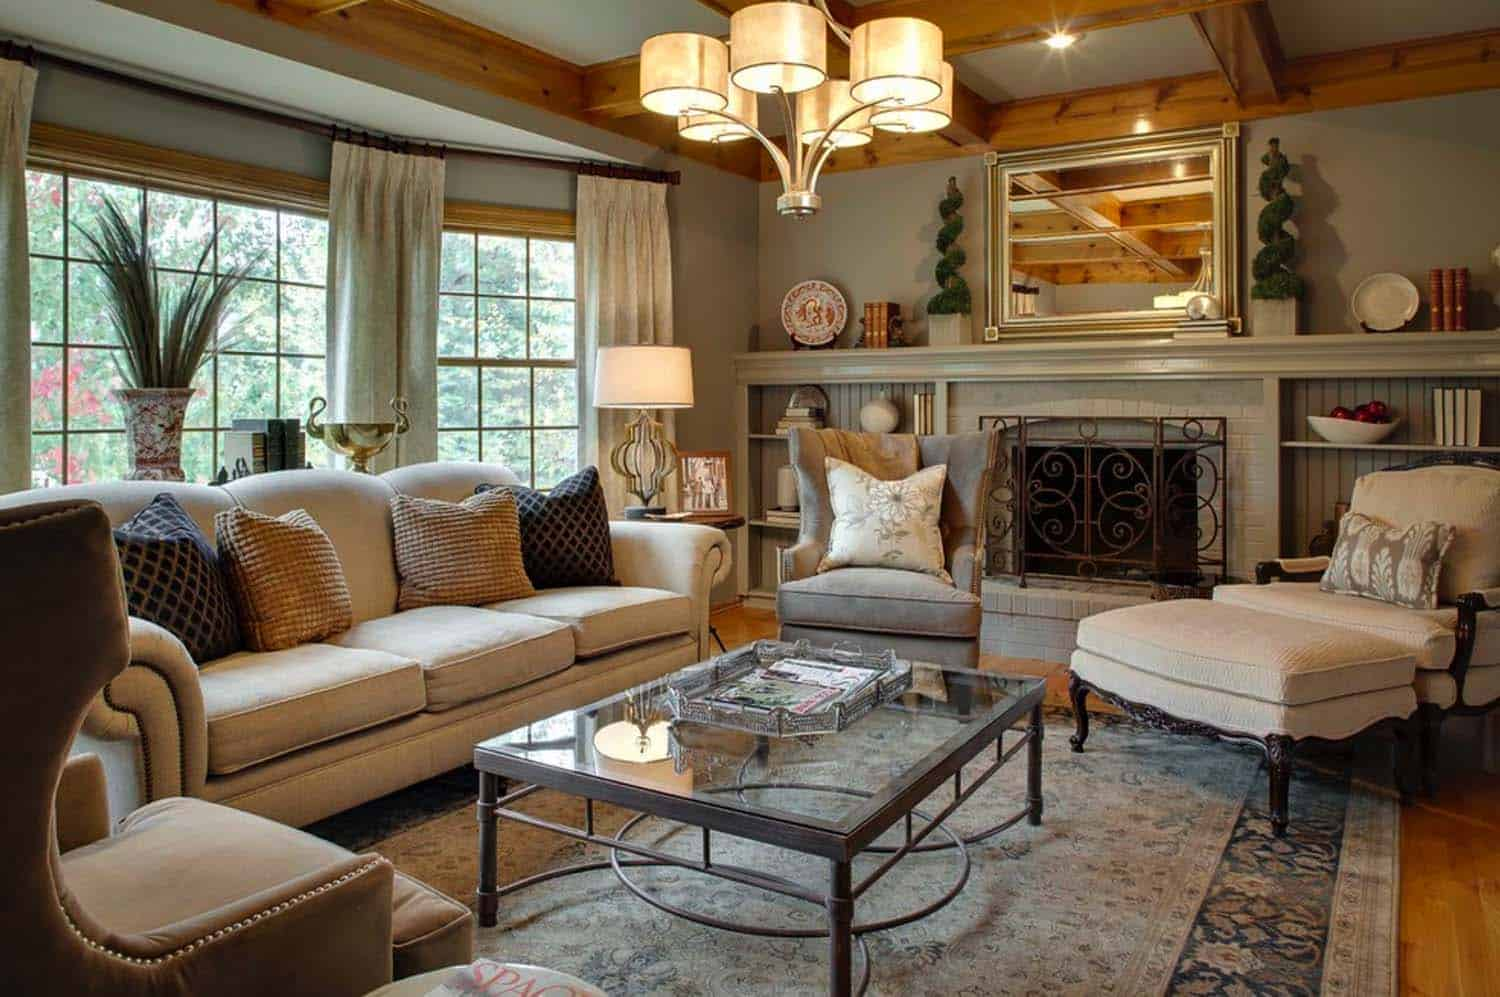 elegant living room decorating ideas french country decor 2 38 rooms that are brilliantly designed 18 1 kindesign